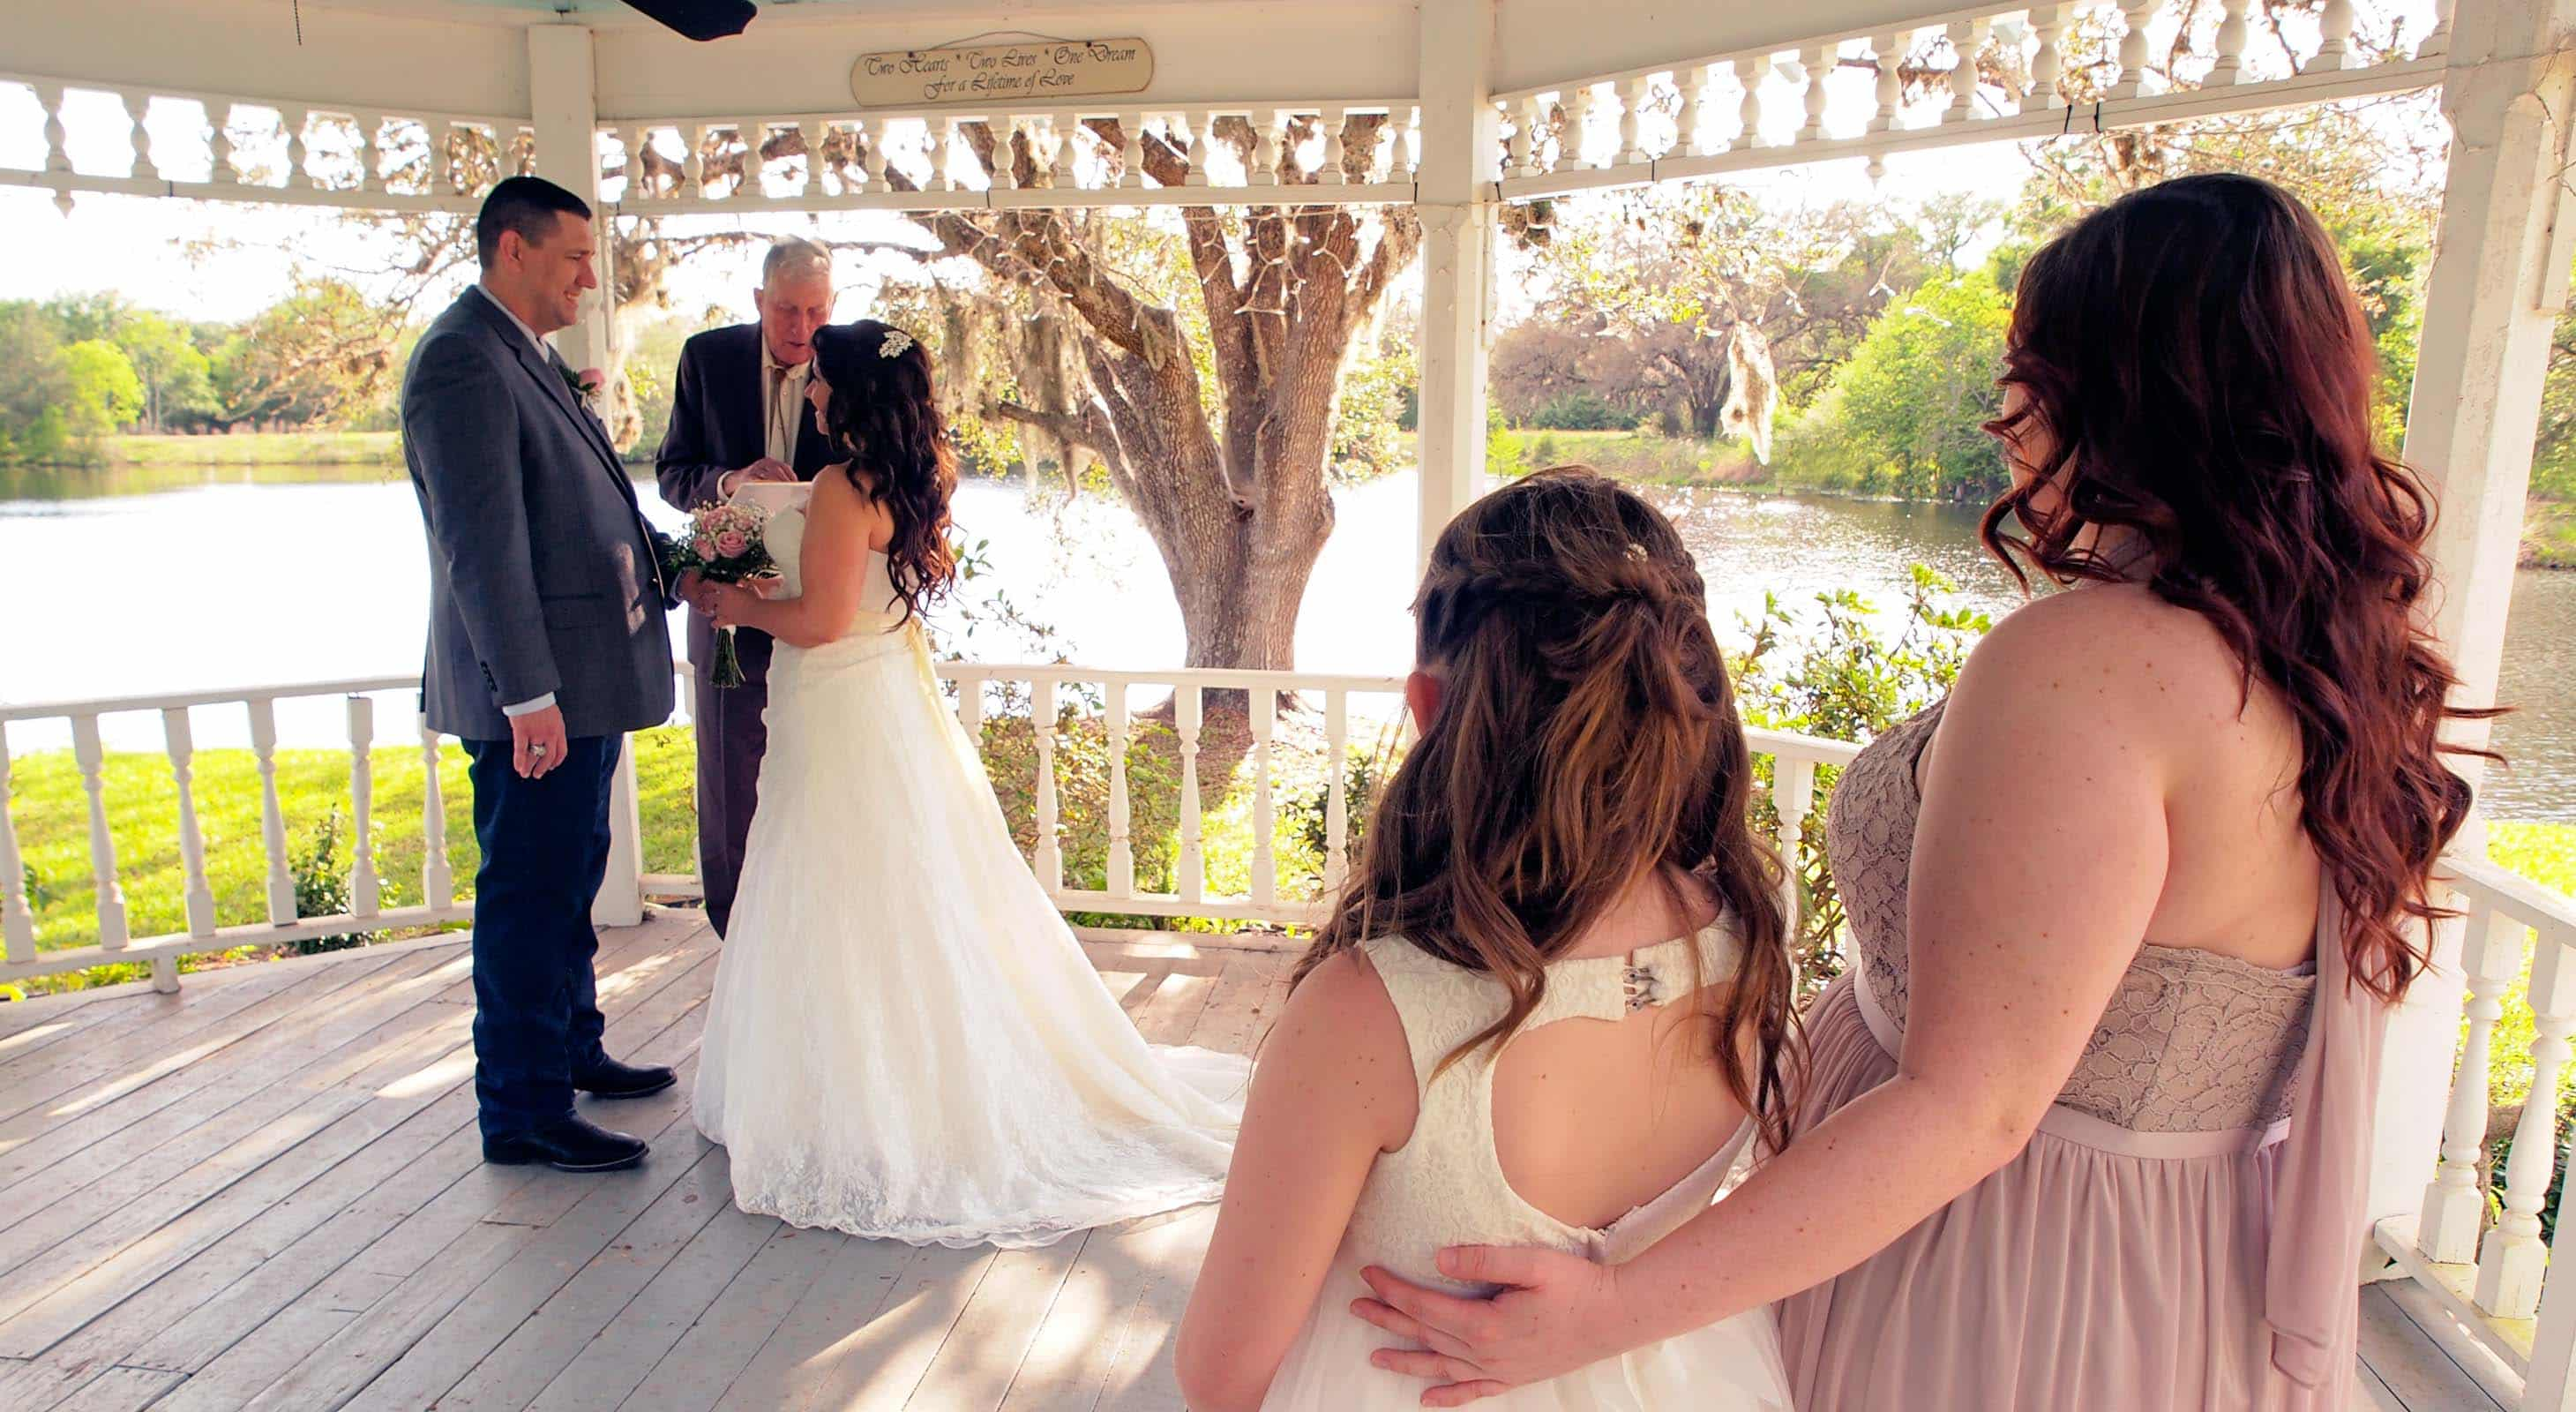 A wedding in the gazebo at BlissWood Ranch